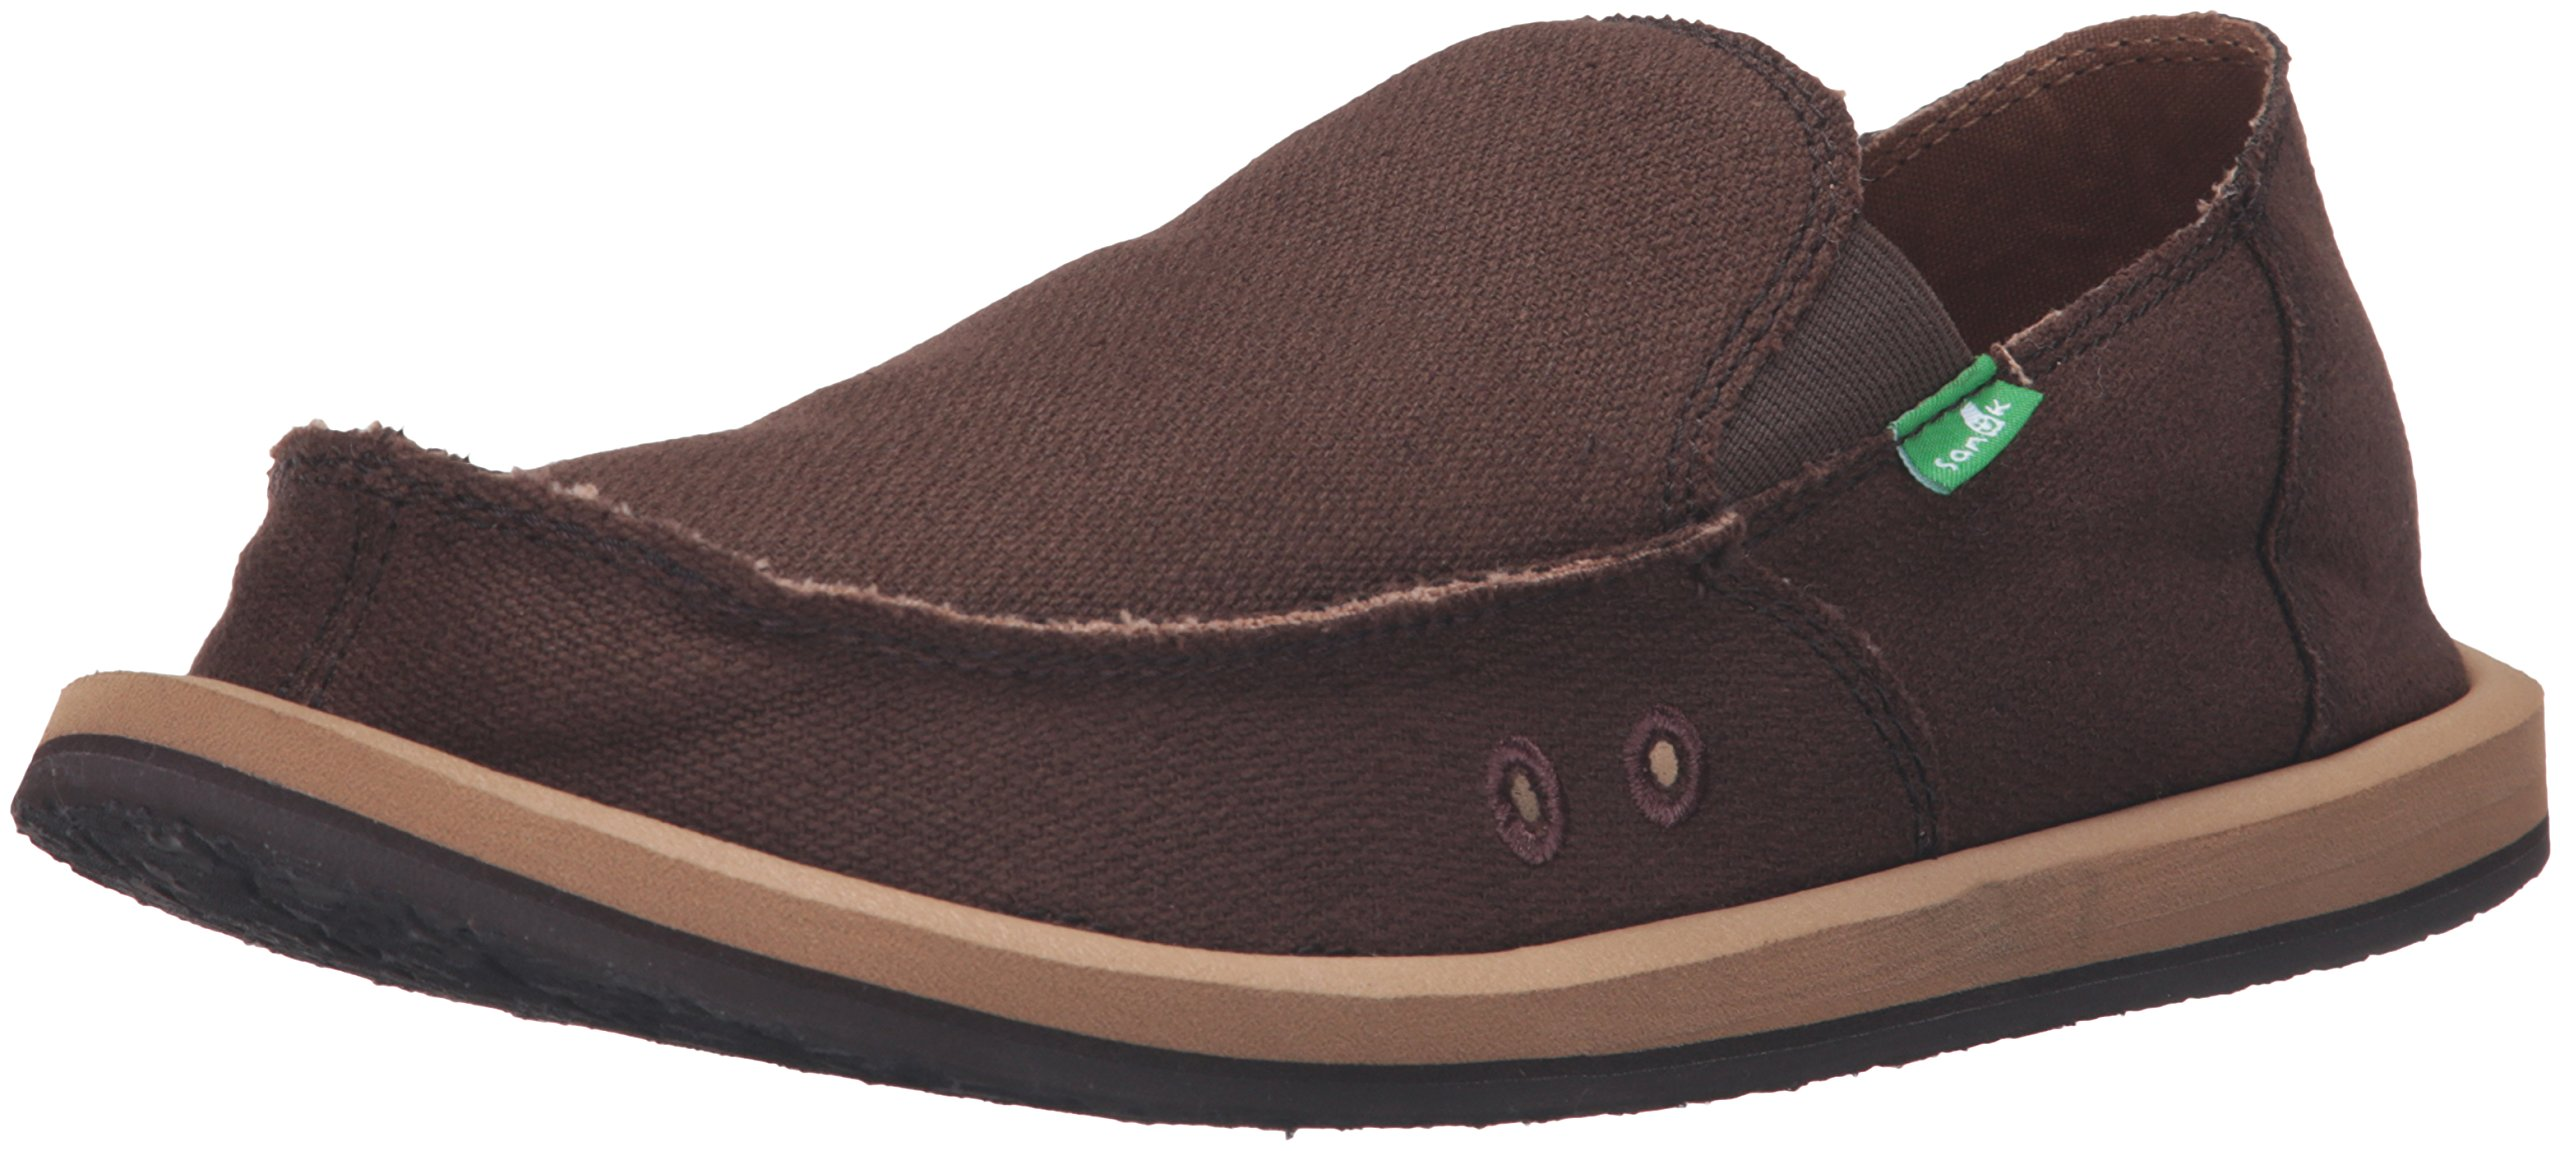 Sanuk Men's Hemp Slip-On, Brown, 6 M US by Sanuk